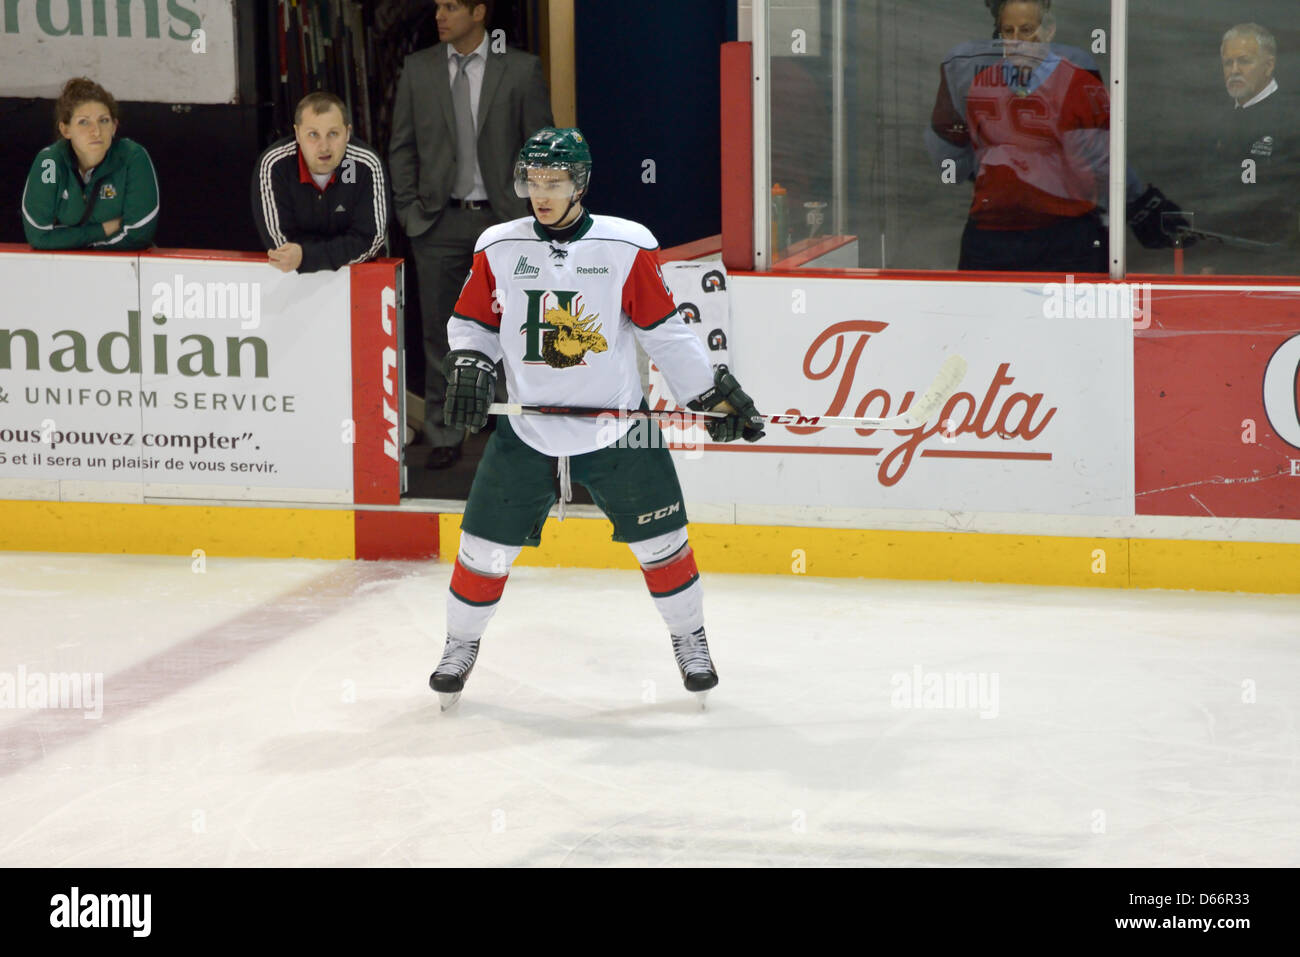 Jonathan Drouin, currently ranked 3 for the upcoming NHL draft, in warm-up of his Halifax Mooseheads game Apr 10, - Stock Image